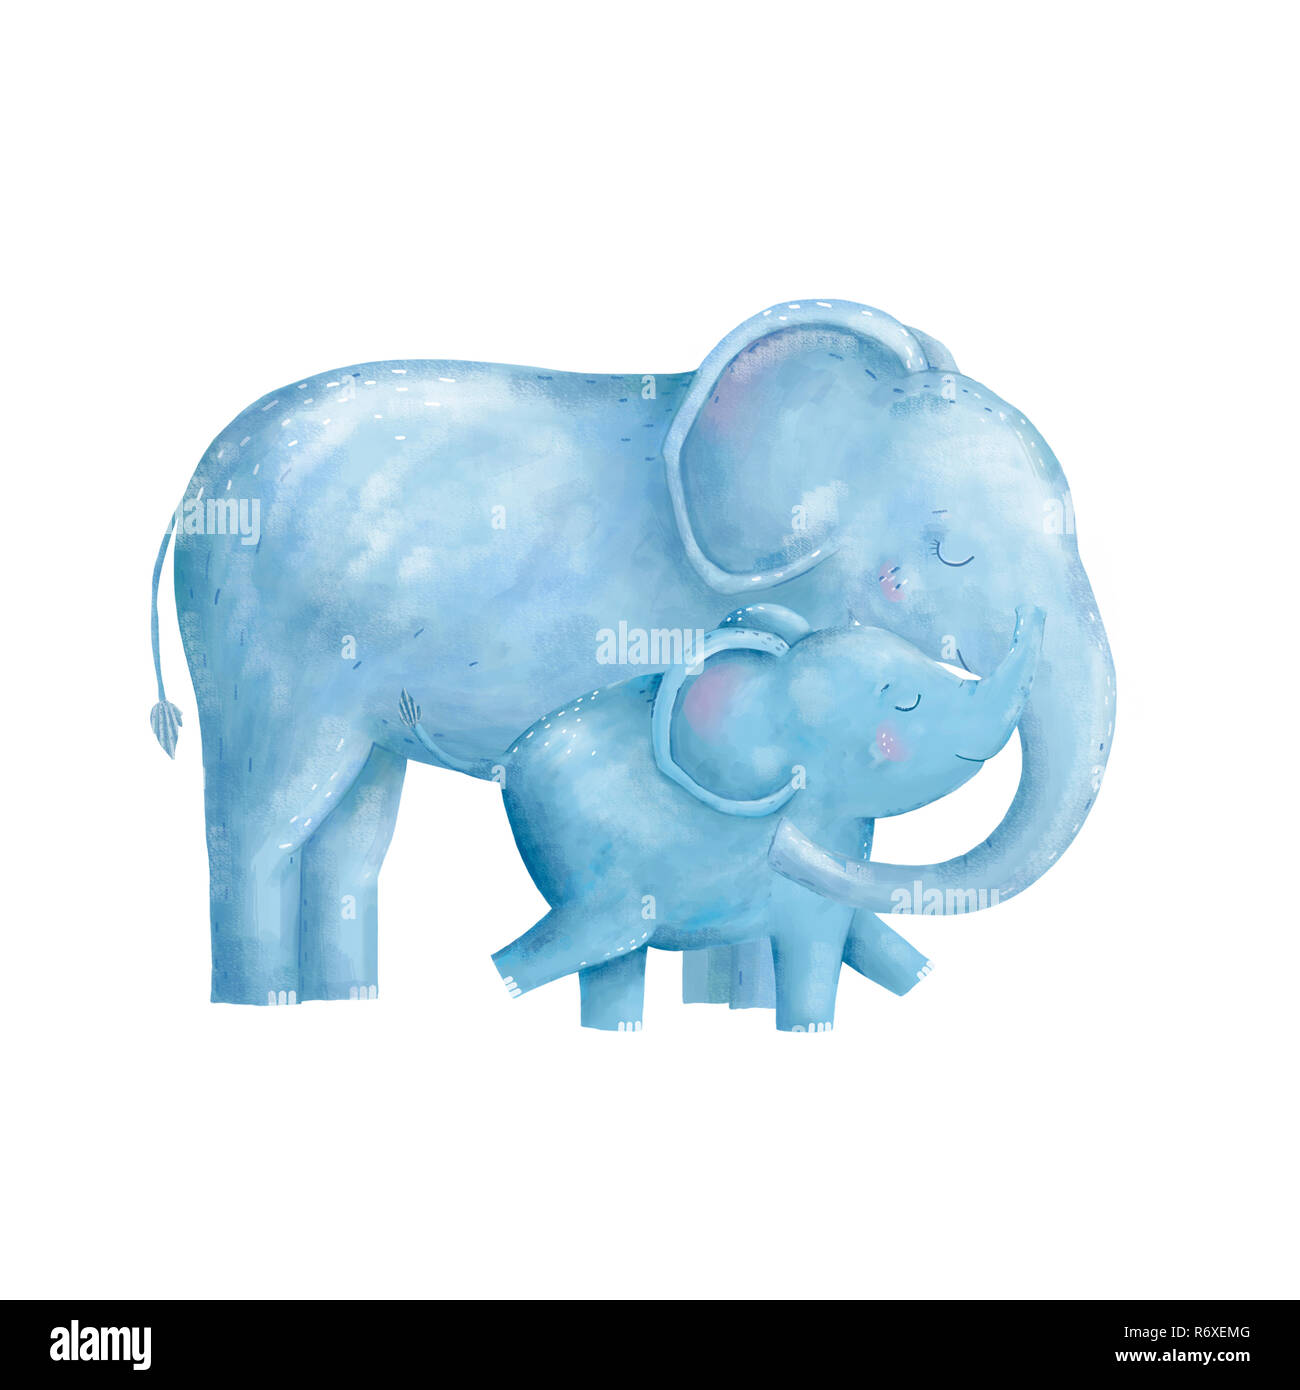 Elephant clip art digital animal of africa character illustration on white background drawing watercolor - Stock Image